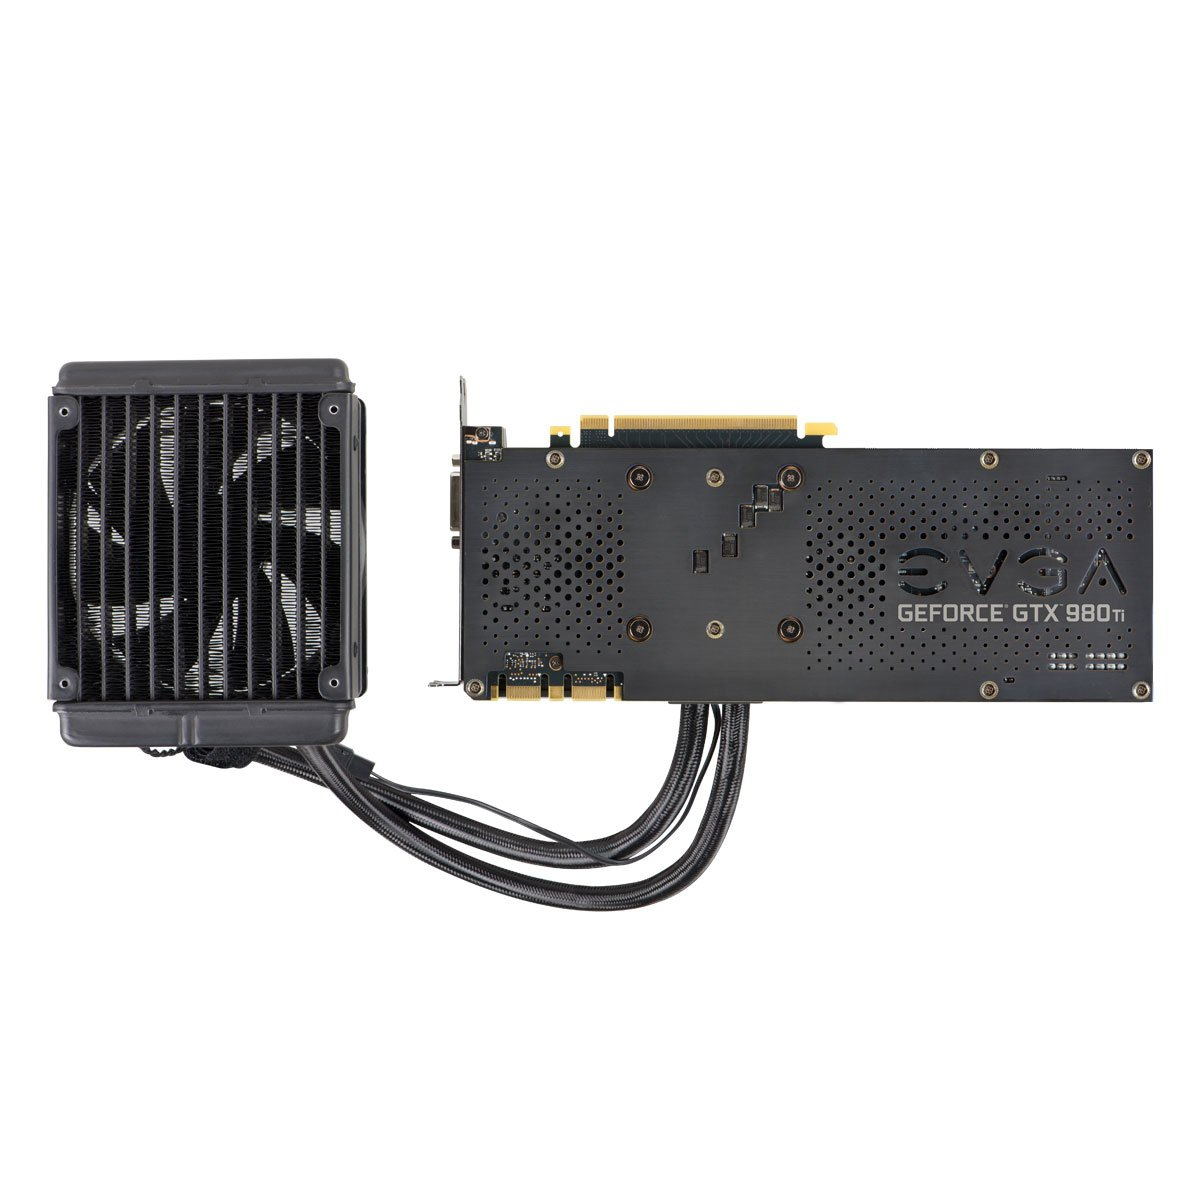 EVGA GeForce GTX 980 Ti 6GB HYBRID GAMING, ''All in One'' No Hassle Water Cooling, Just Plug and Play Graphics Card 06G-P4-1996-KR by EVGA (Image #7)